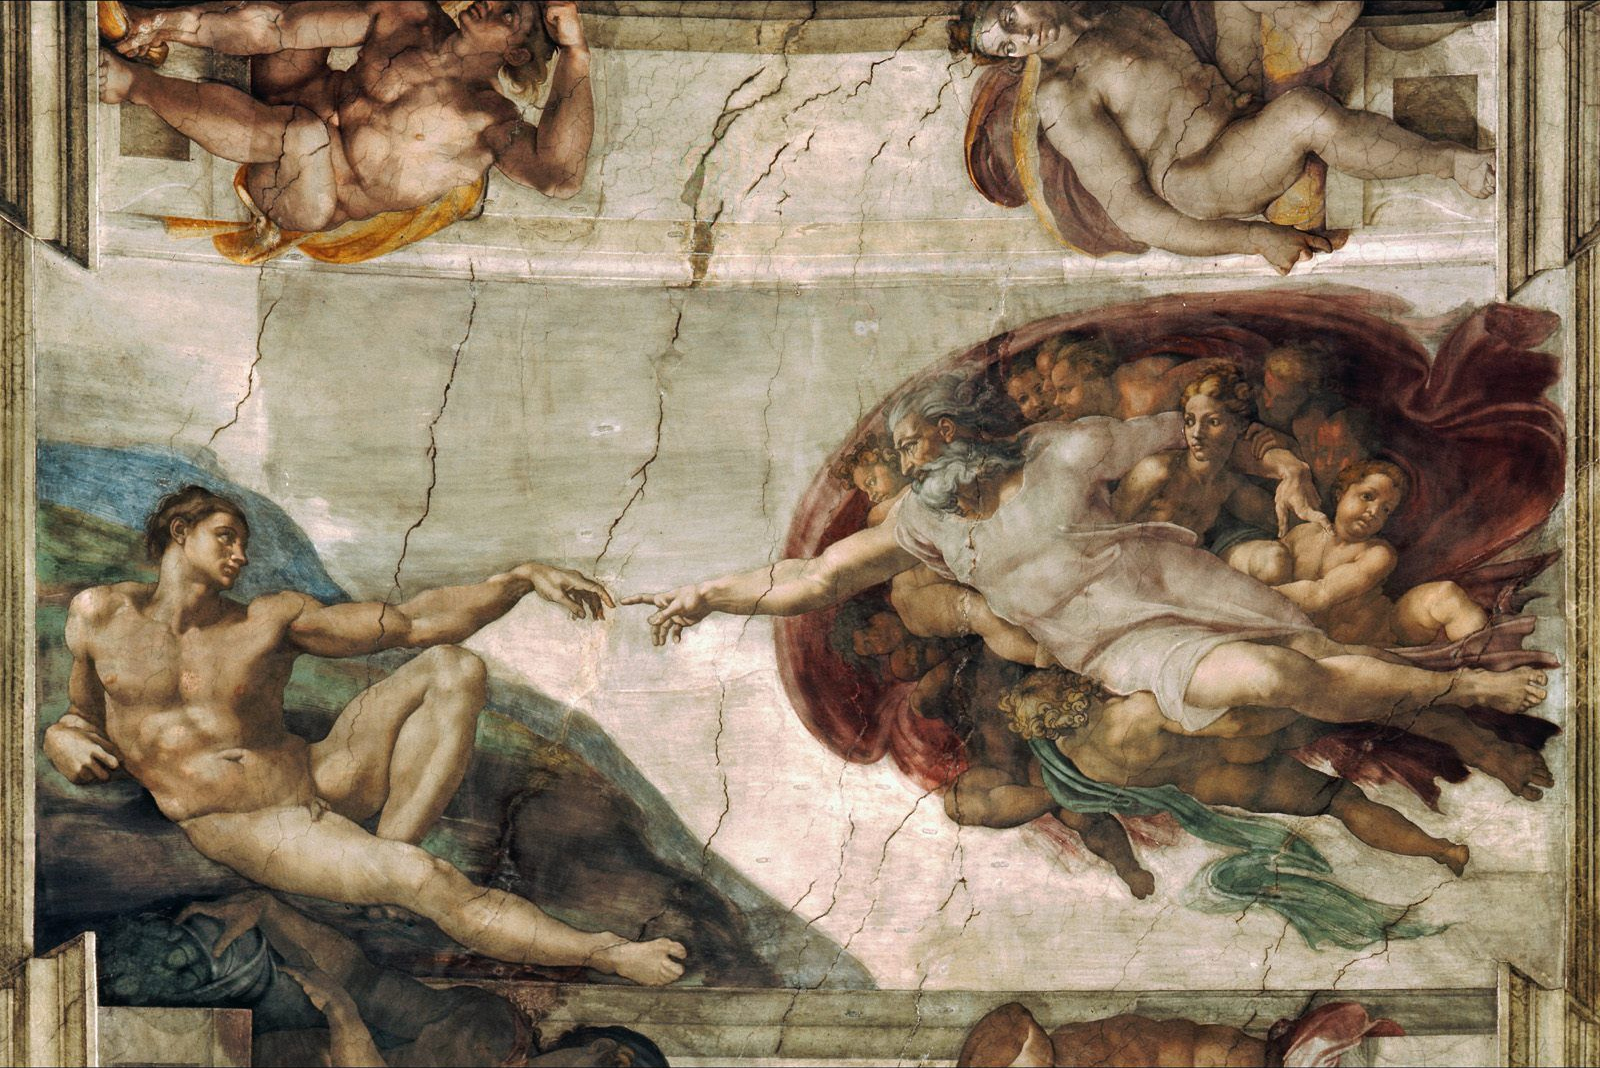 File:Creation of Adam Michelangelo.jpg - Wikimedia Commons